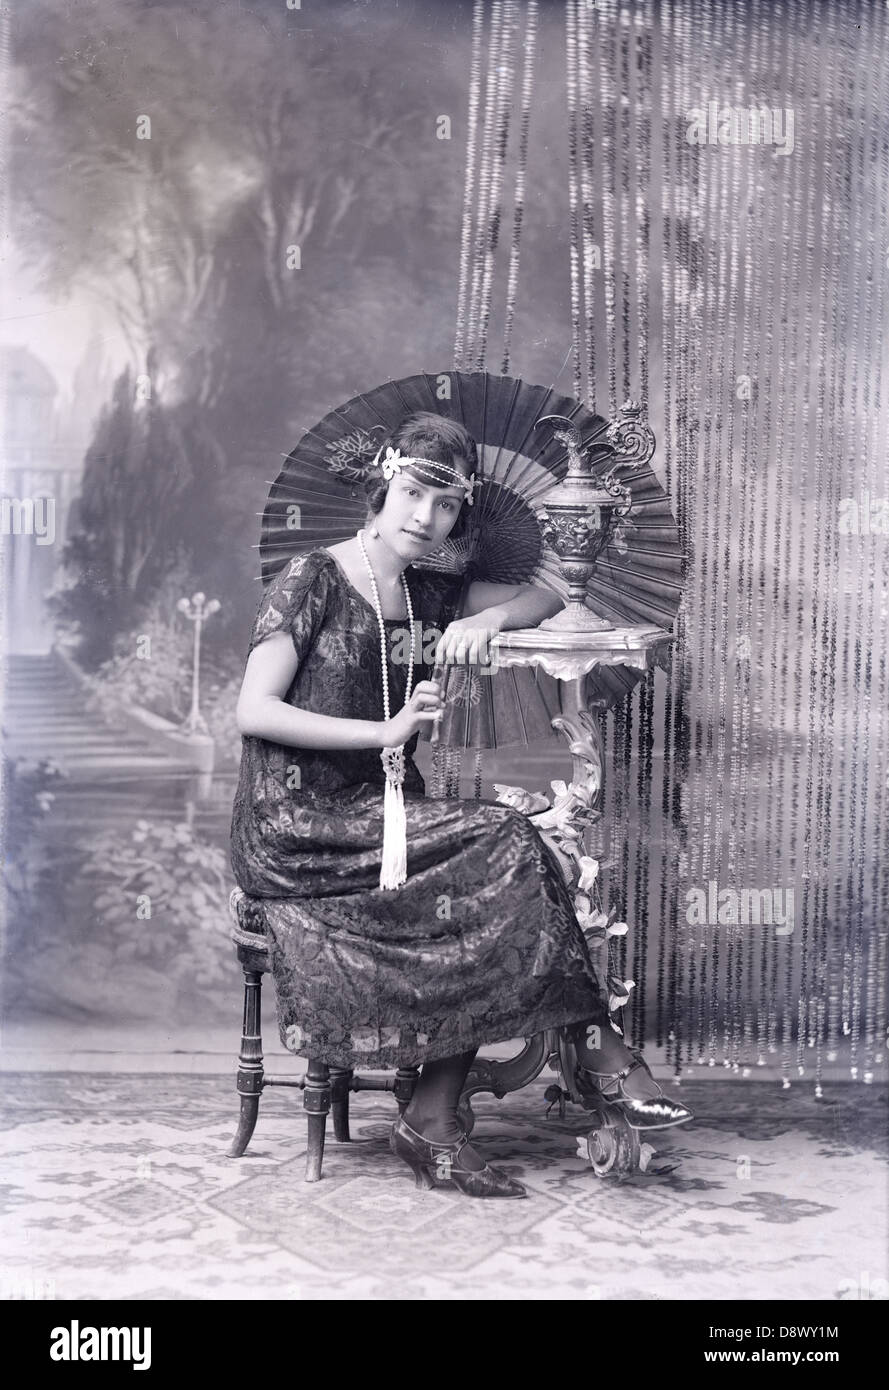 Circa 1900 photograph, portrait of a young Guatemalan woman, from an original glass negative. Stock Photo